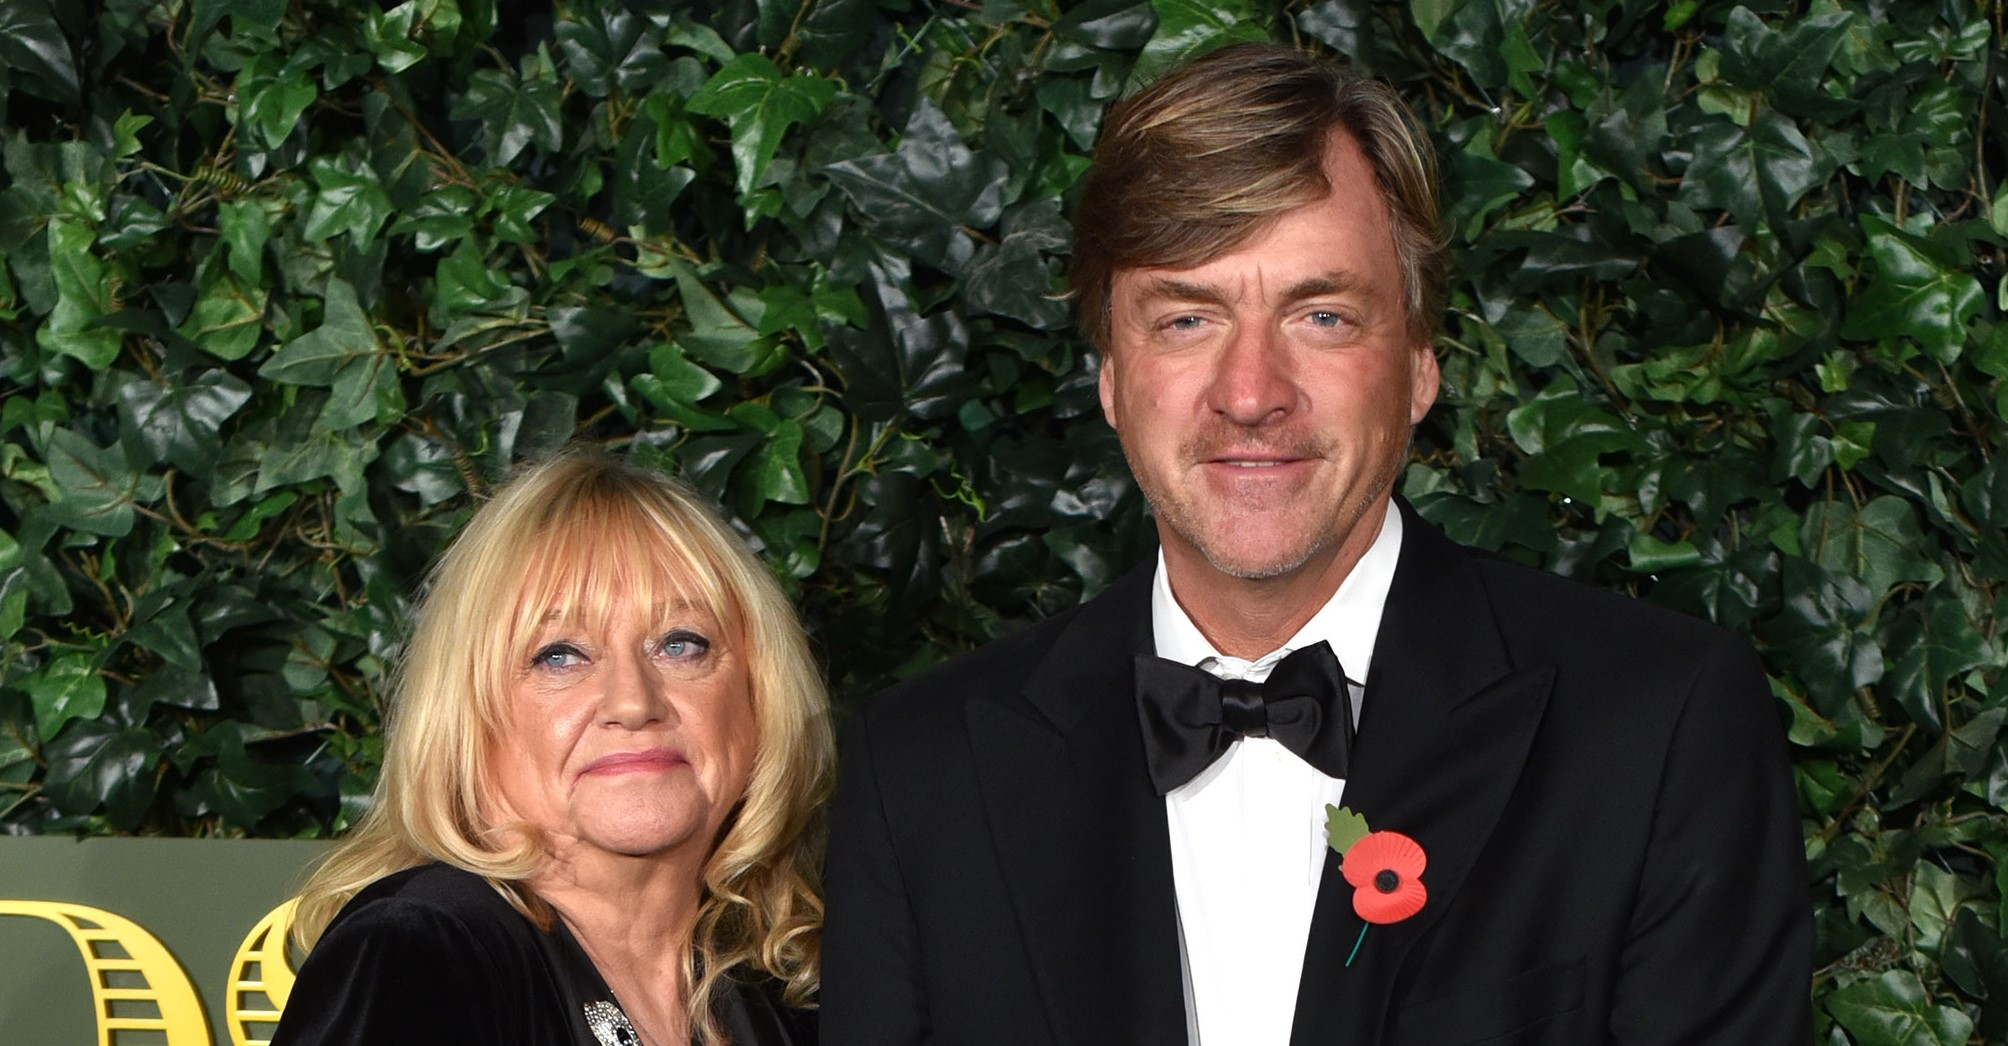 Richard Madeley and Judy Finnigan are eager to return to This Morning